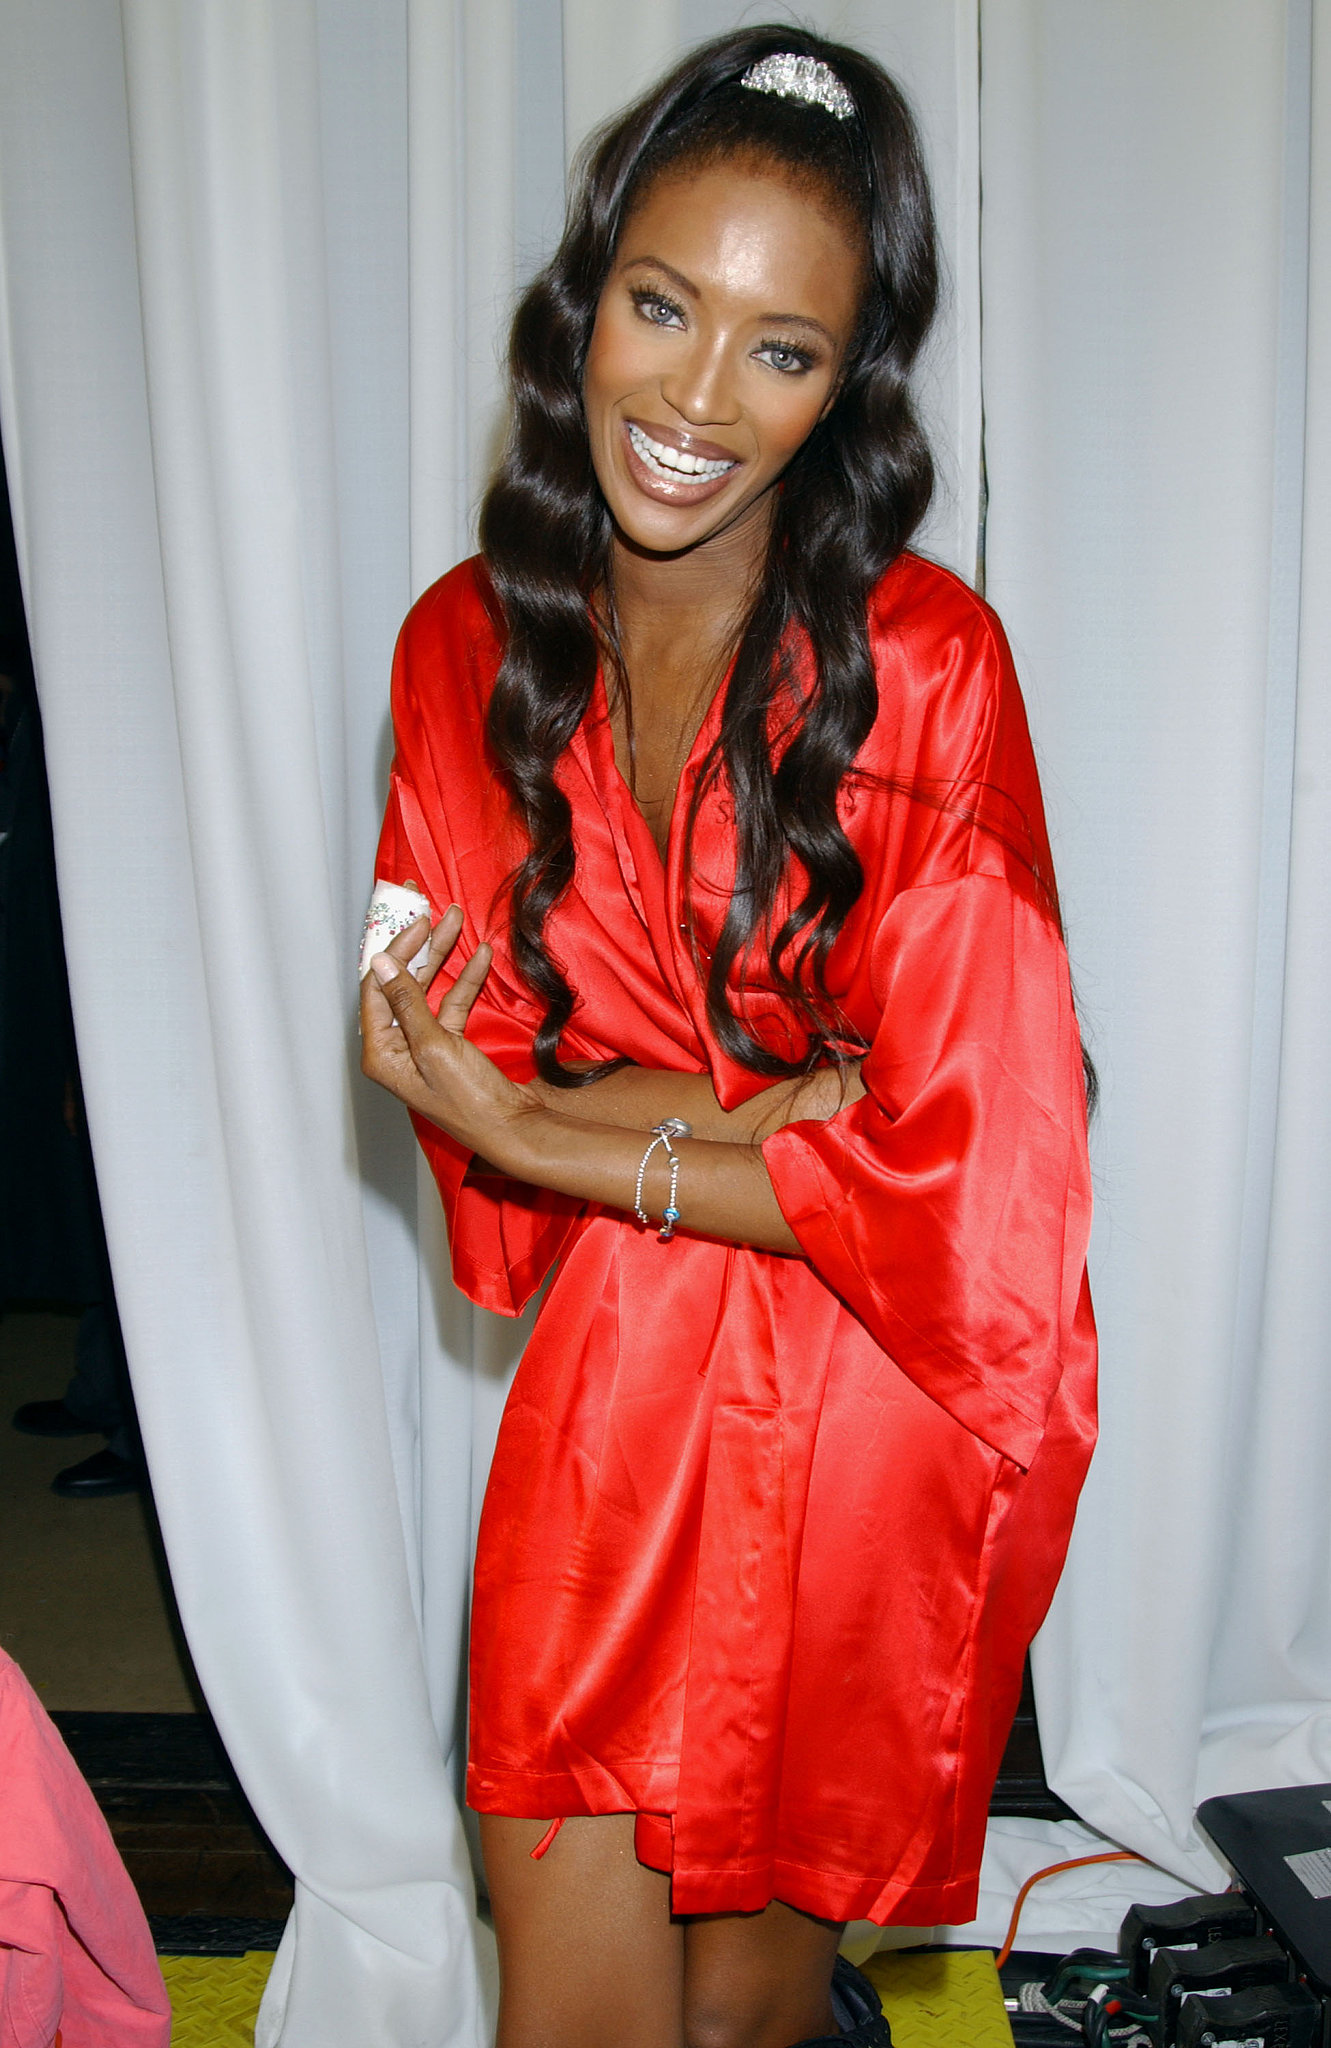 Naomi Campbell smiled big while backstage in 2003.